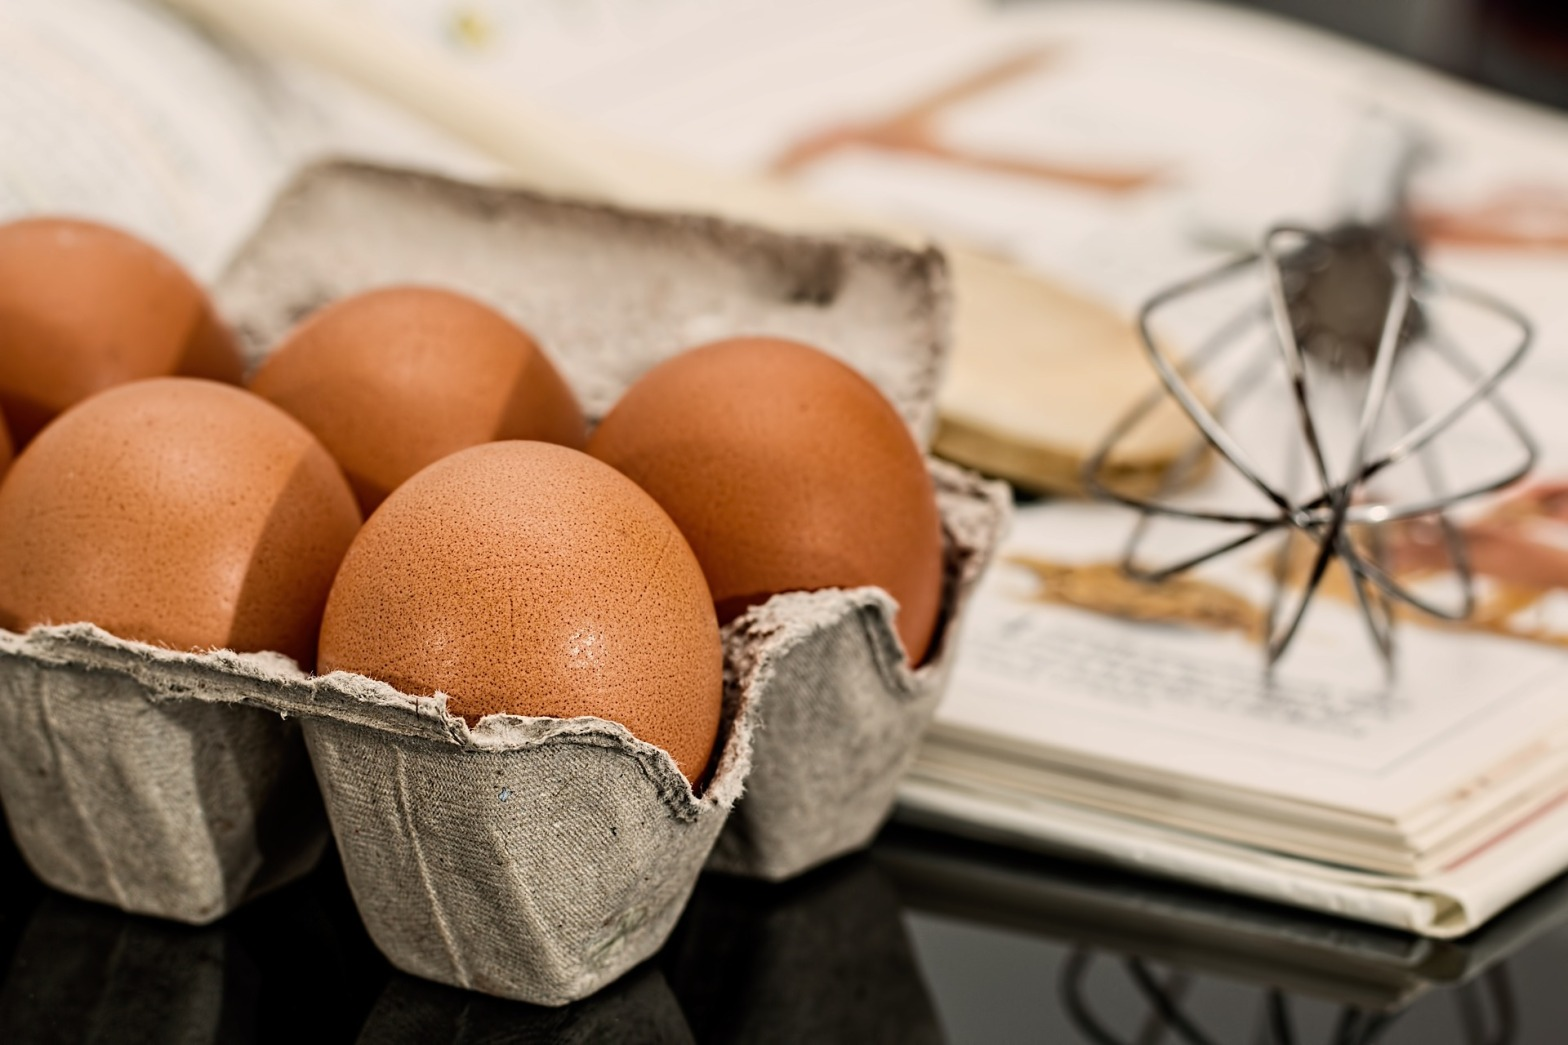 The easiest ways to make eggs